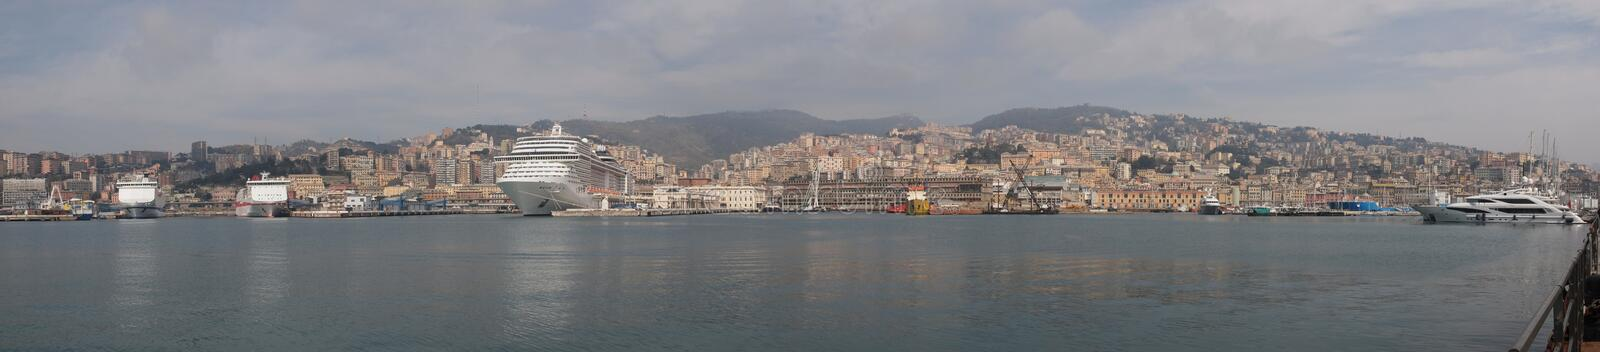 Genoa panorama. Wide panoramic view of the city of Genoa skyline from the sea royalty free stock image